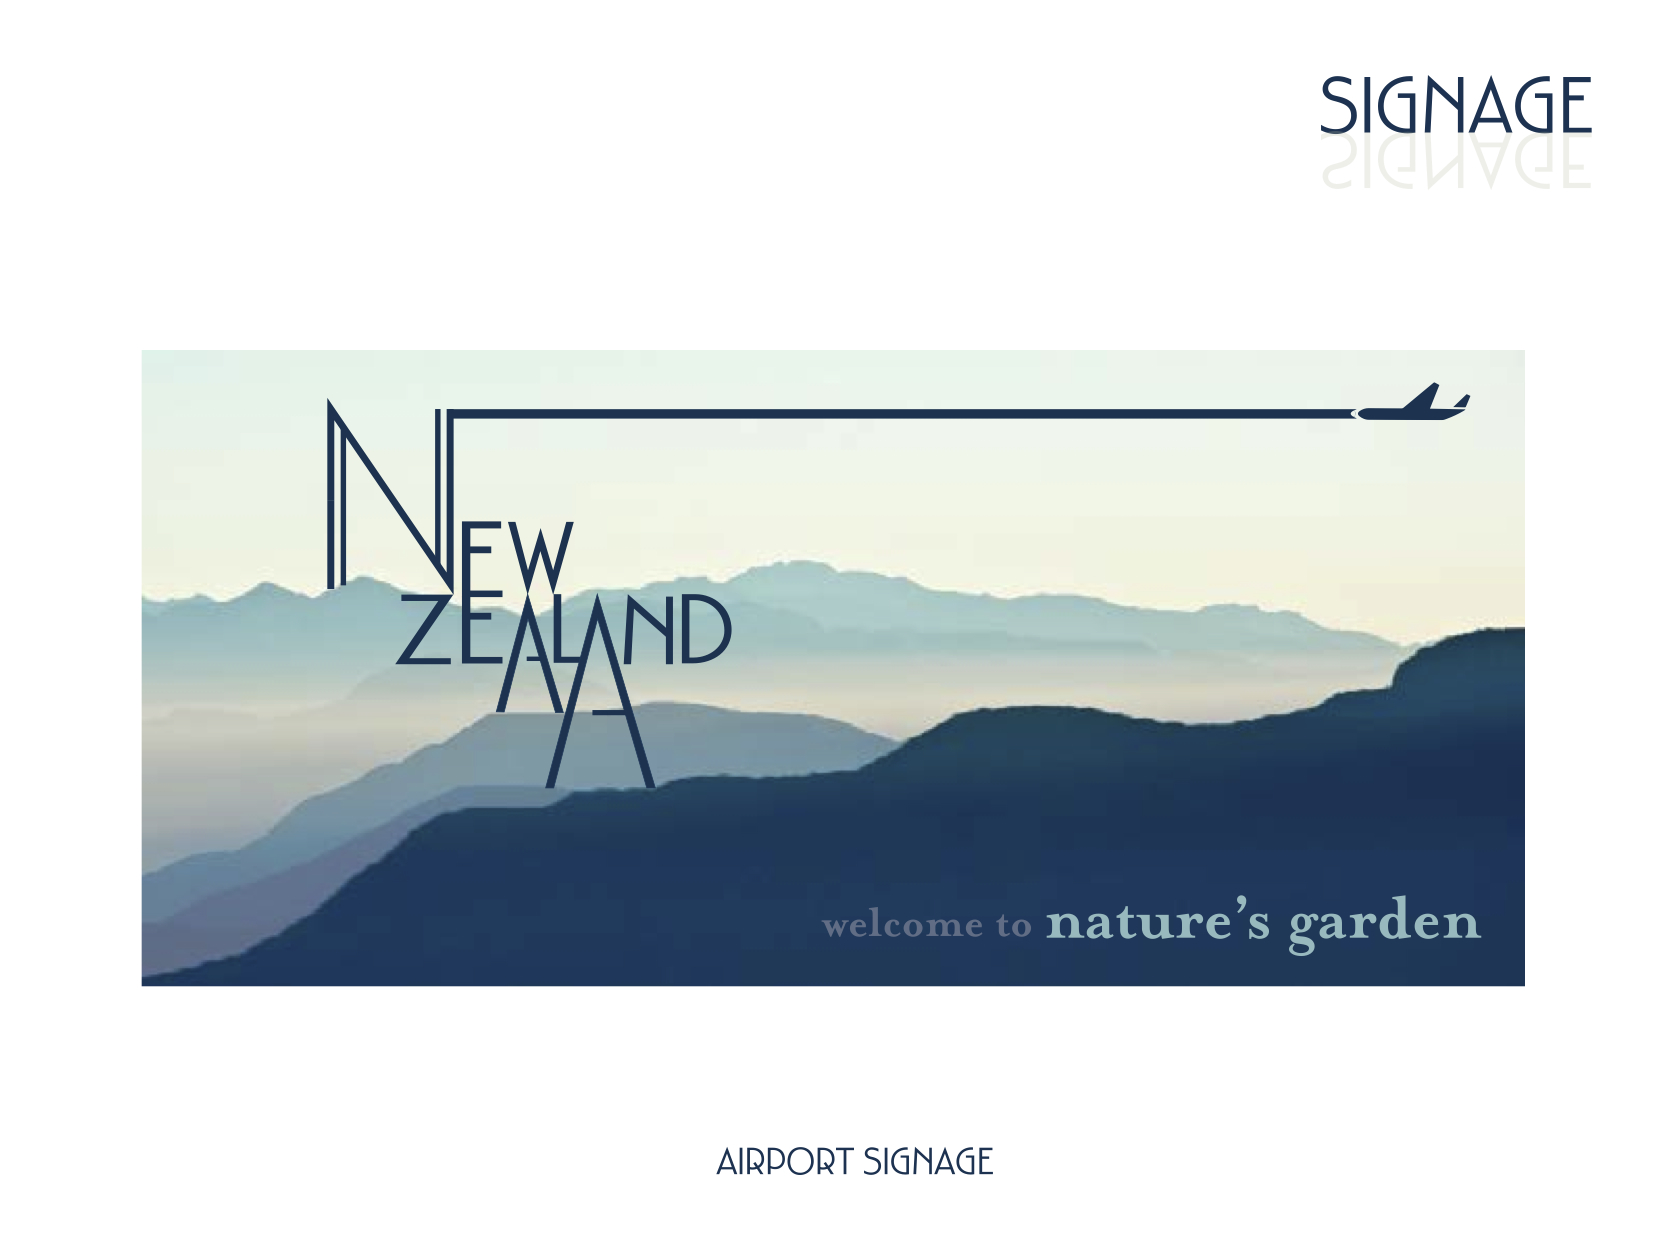 New Zealand Creative Brief